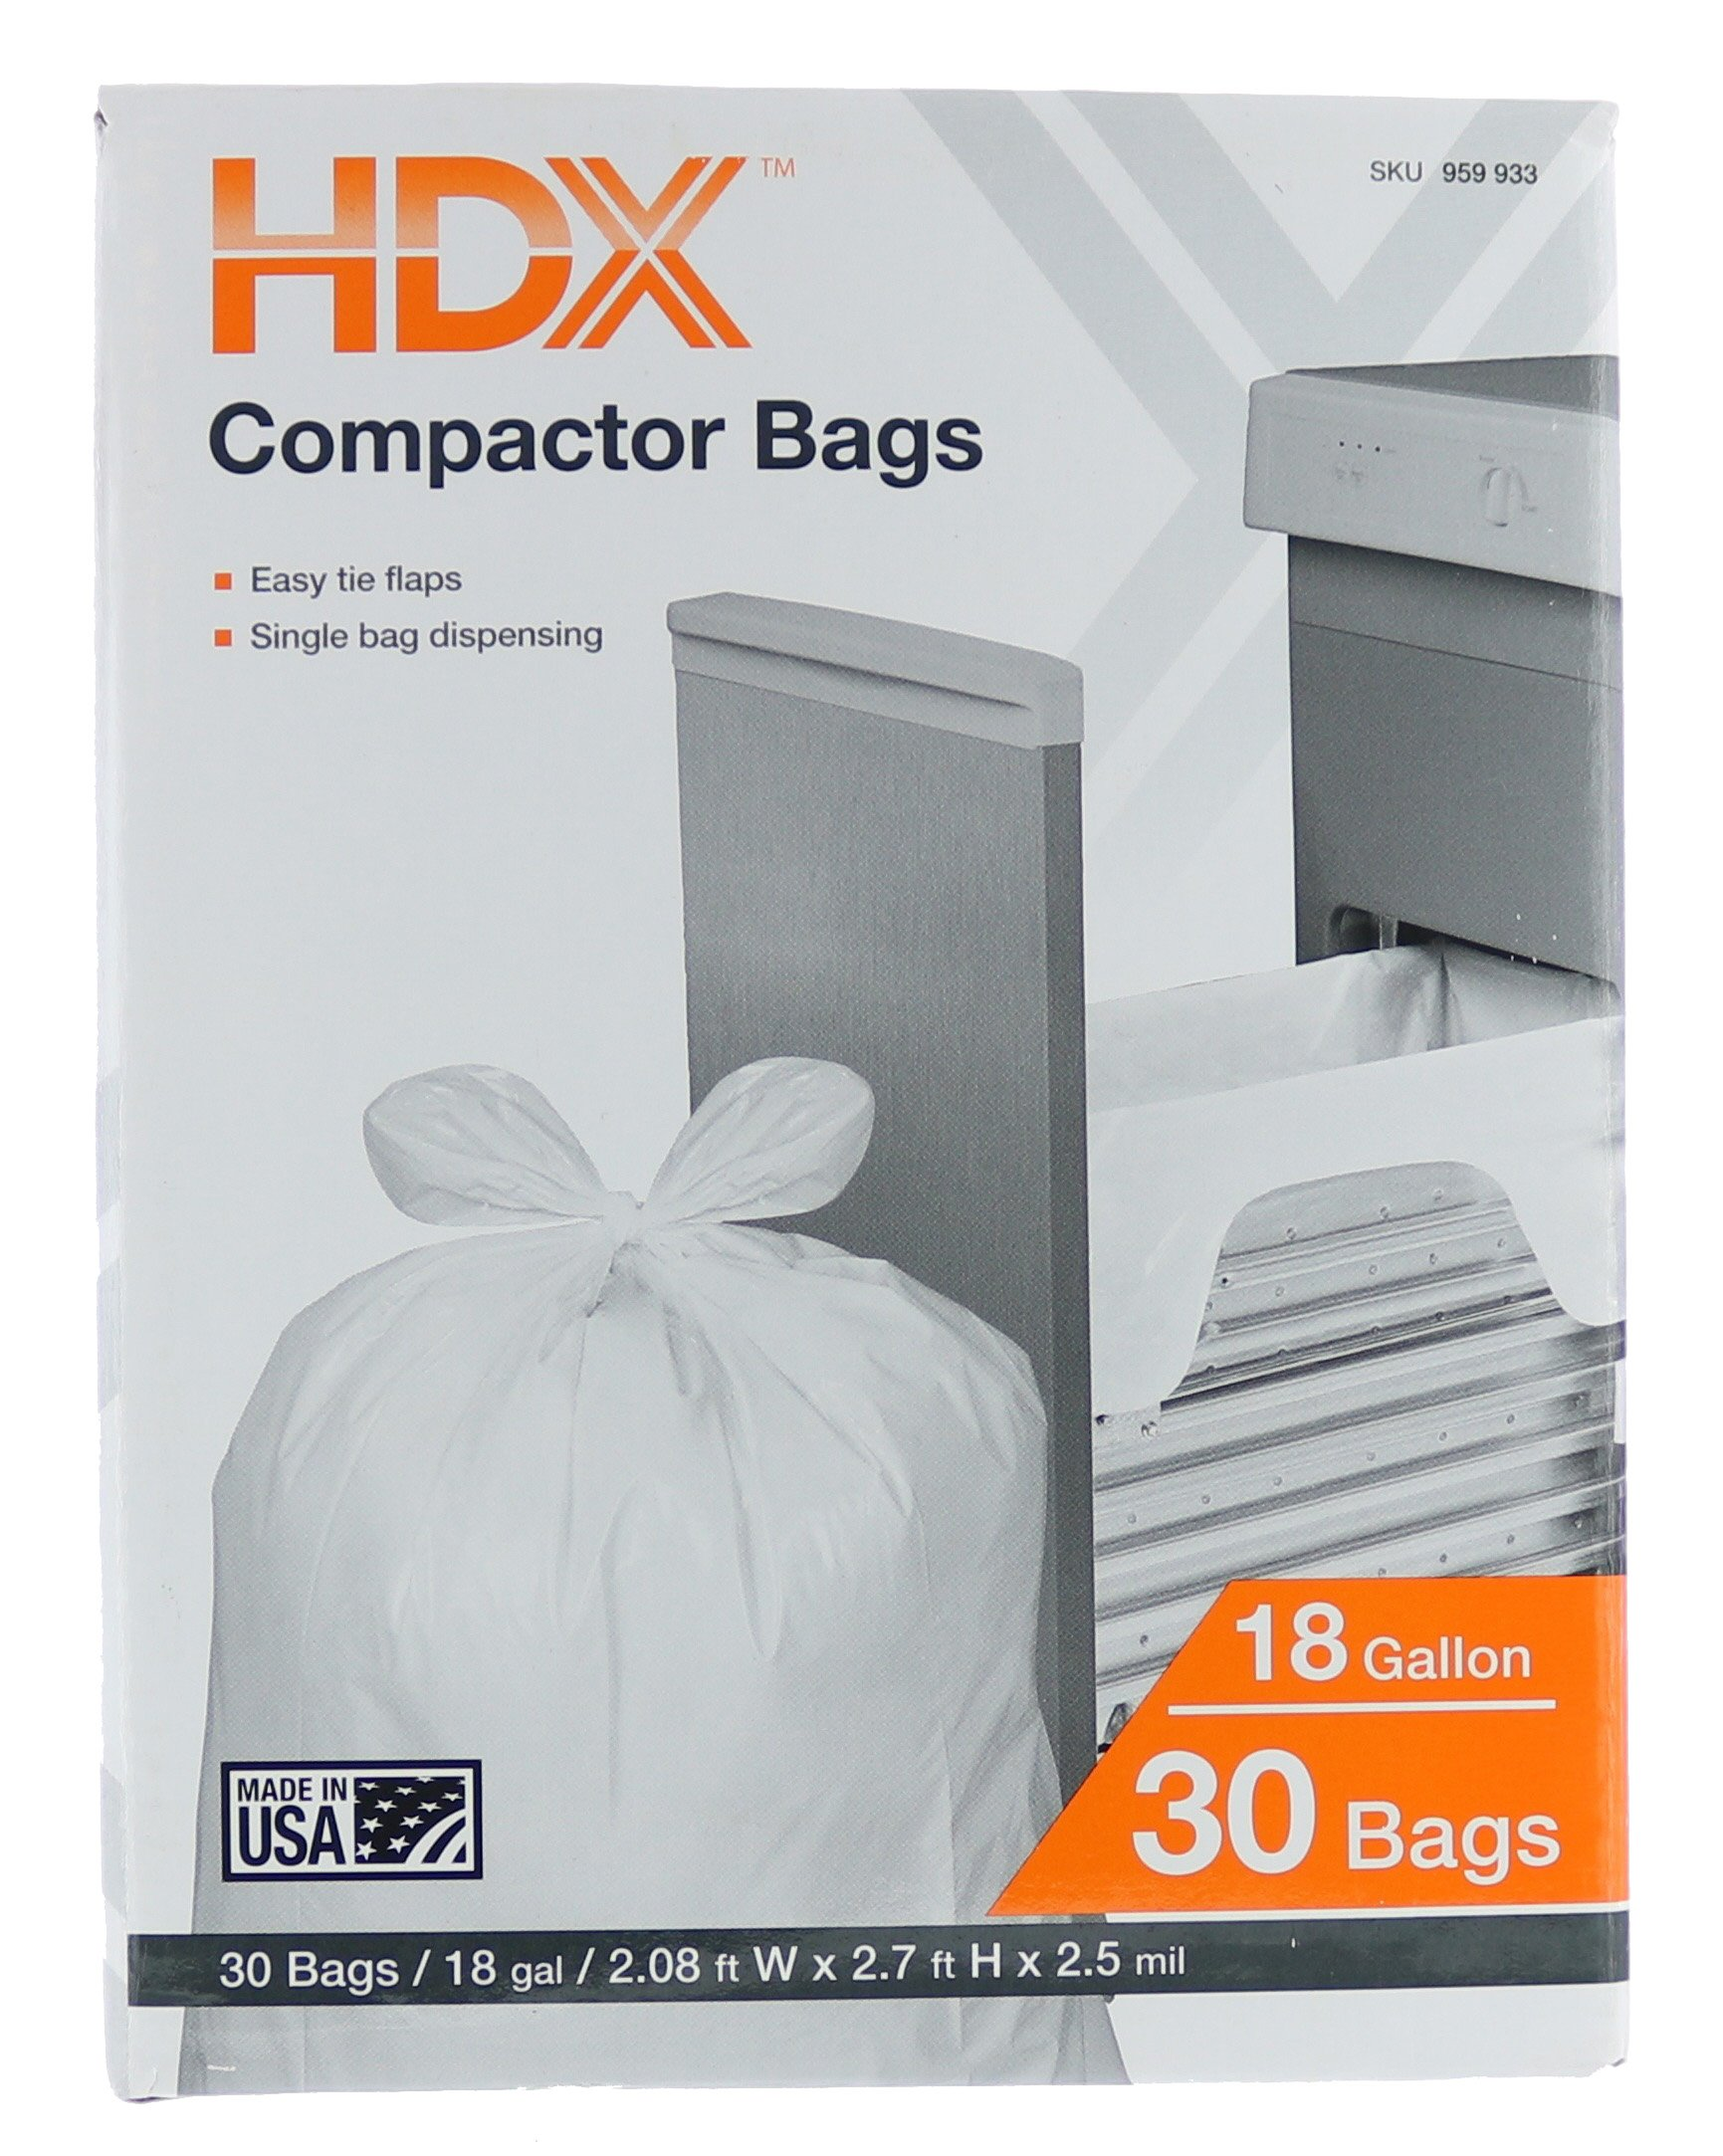 HDX 959933 18 Gallon 2.5 Mil Trash Compactor Bags w/ Tie Flaps (30-Count) (Made in USA)